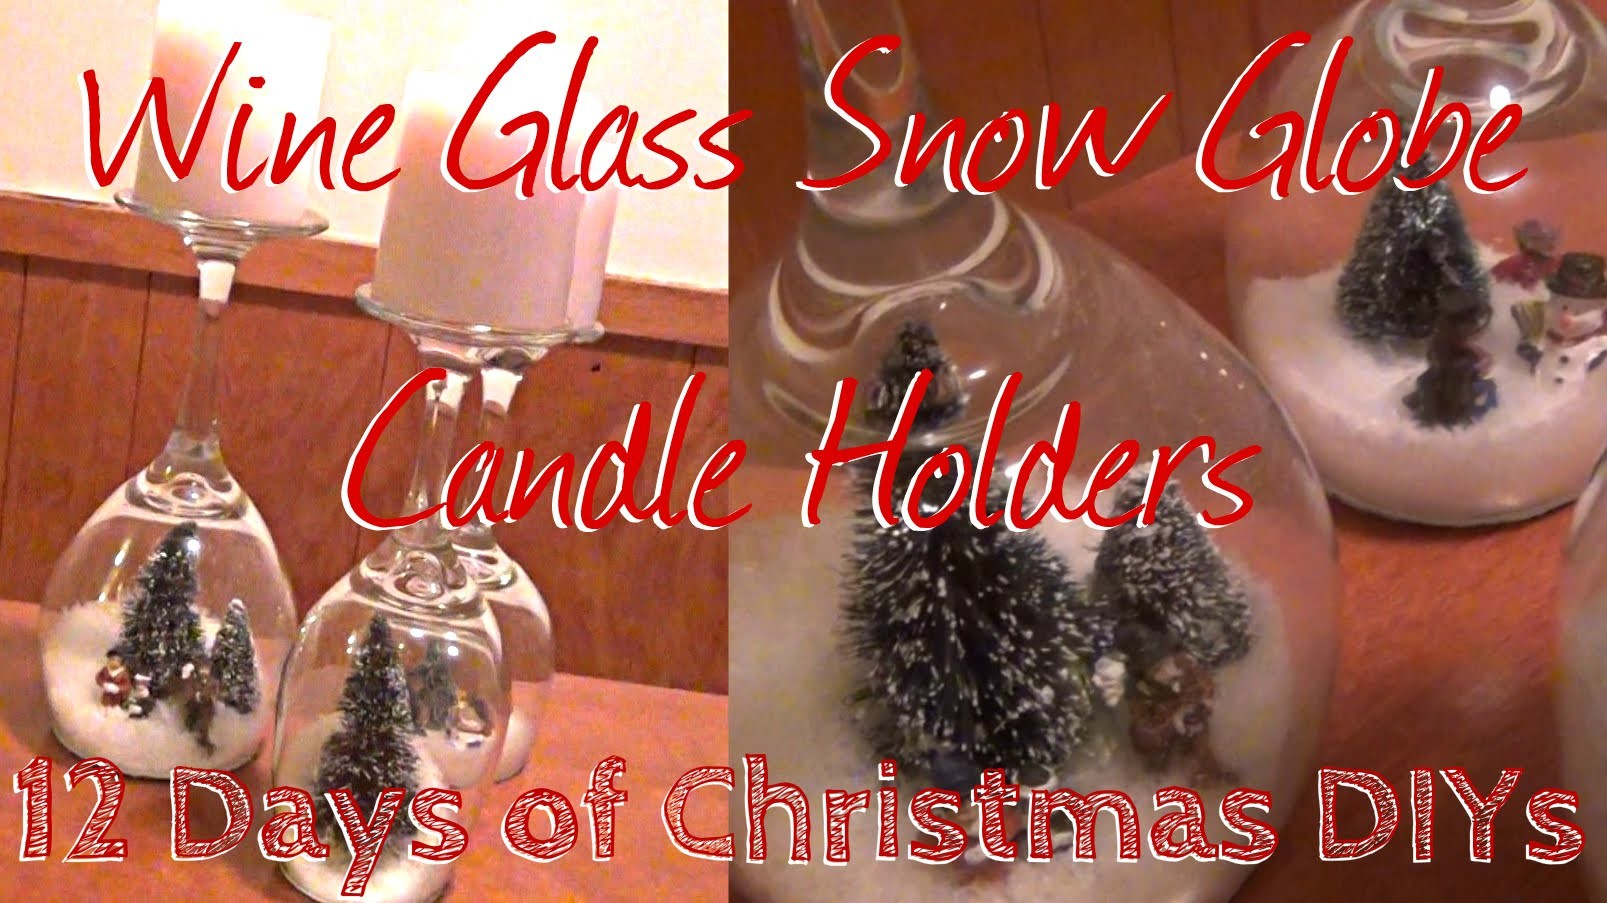 Wine Glass Snow Globe Candle Holders ♥ 12 Days of Christmas DIYs - DAY FIVE